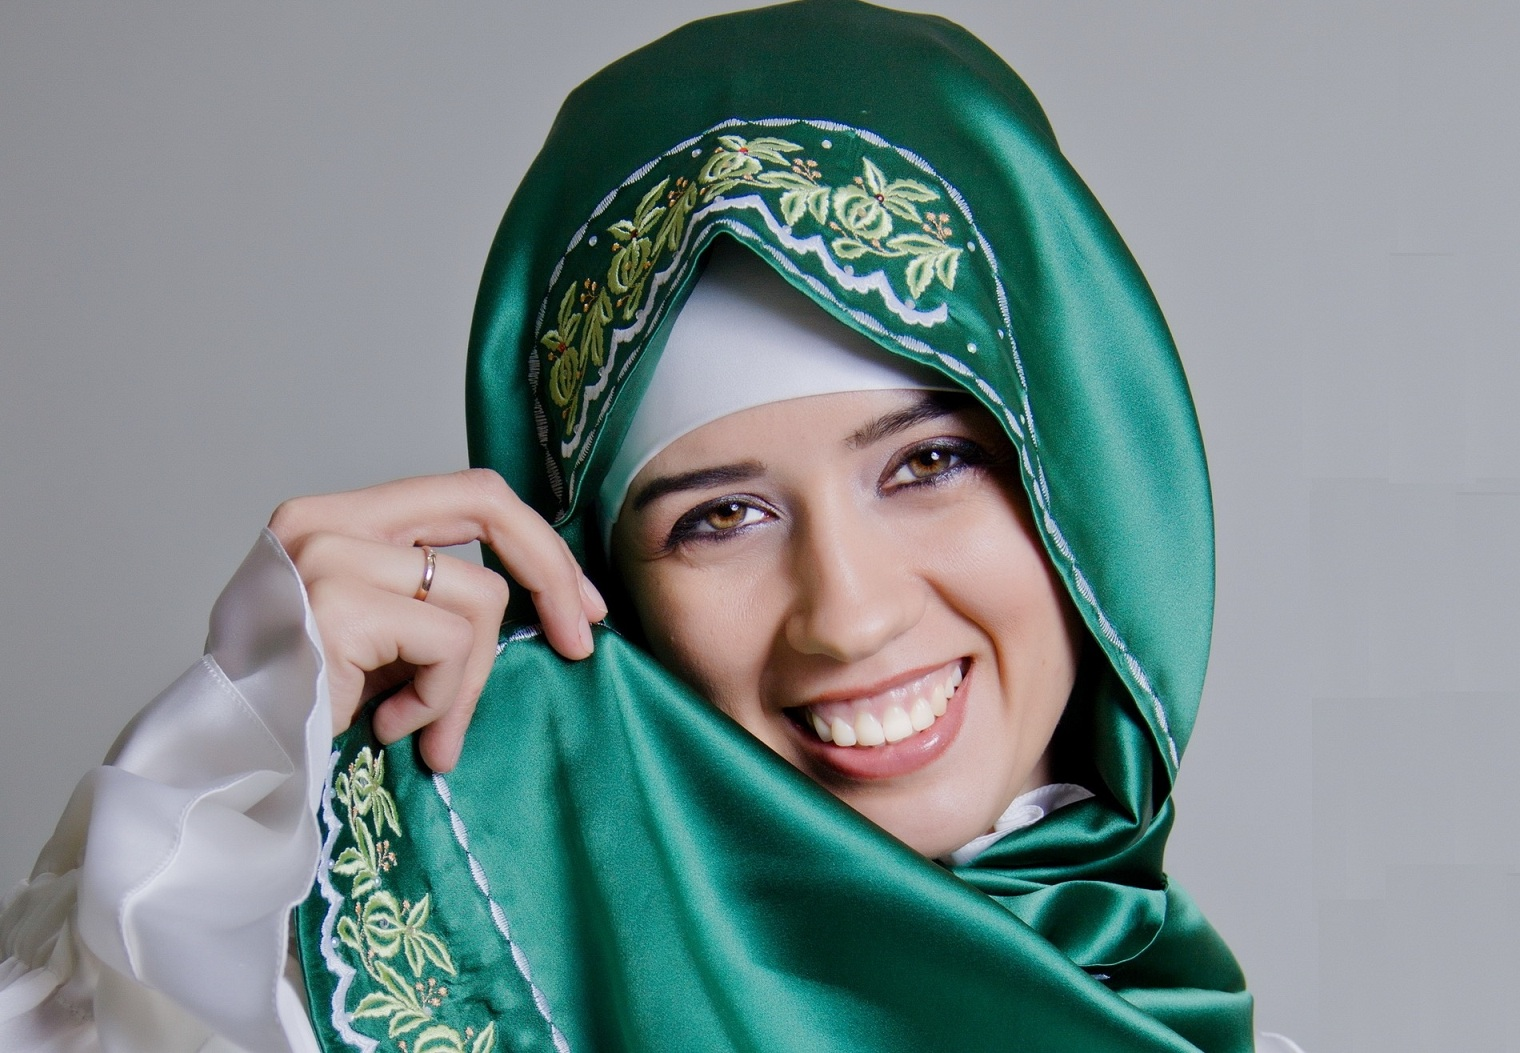 alverda muslim girl personals The problem with dating as a muslim woman is almost always one of culture than religion having tried the 'marriage experiment' once, i know that religion doesn't play a role in the day-to.